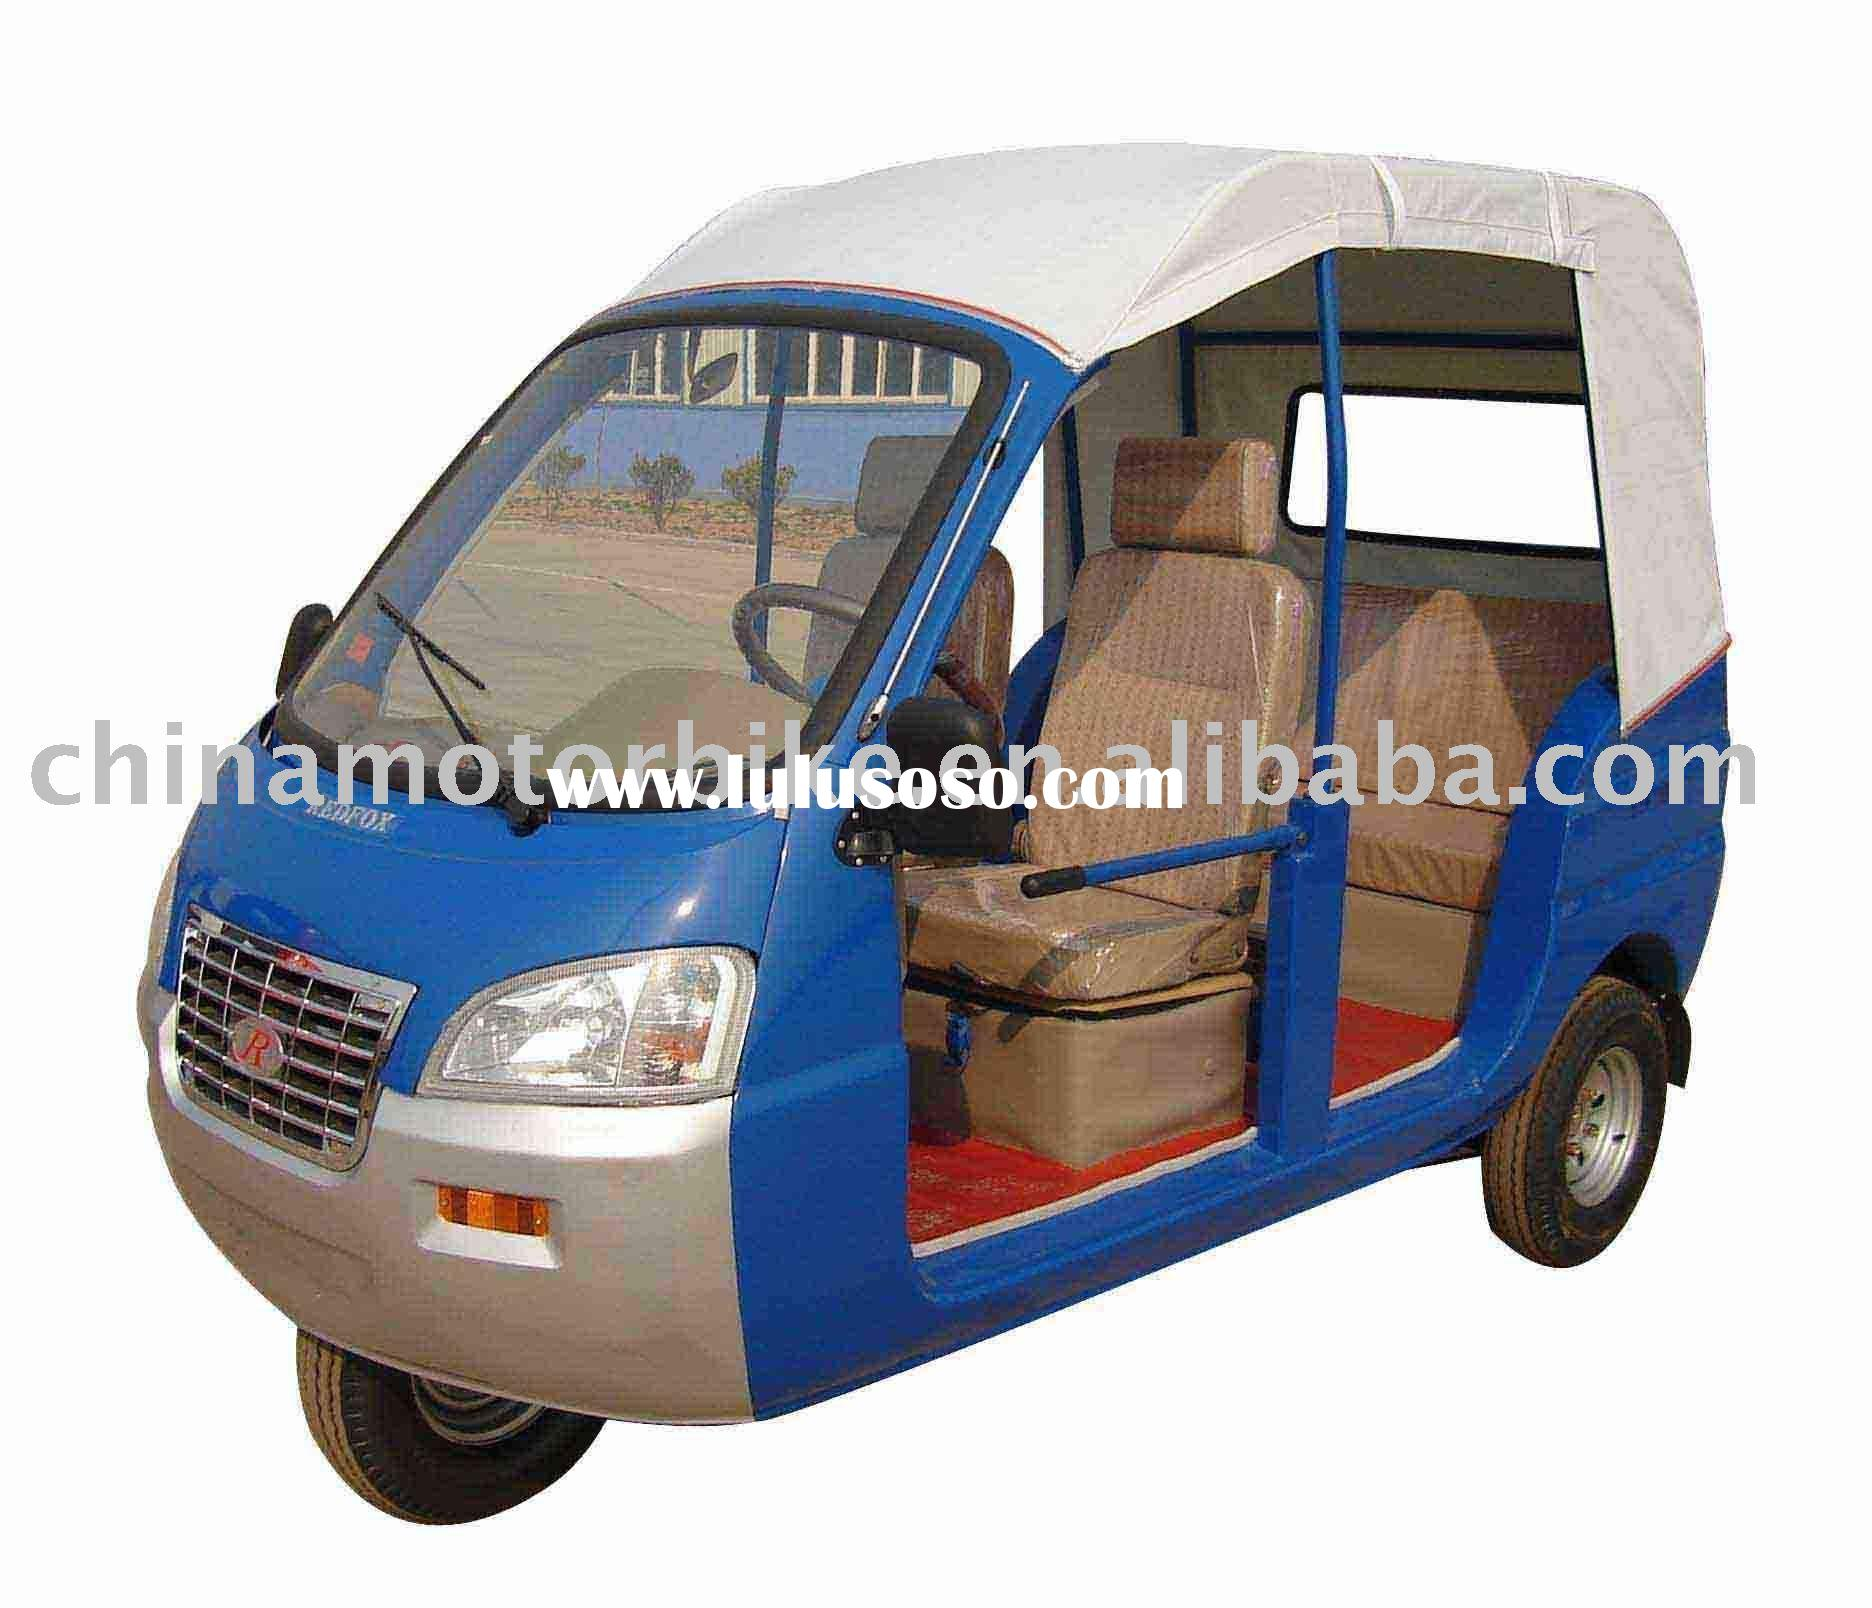 Motor tricycle, three wheel motorcycle,trike, auto rickshaw,tuk tuk